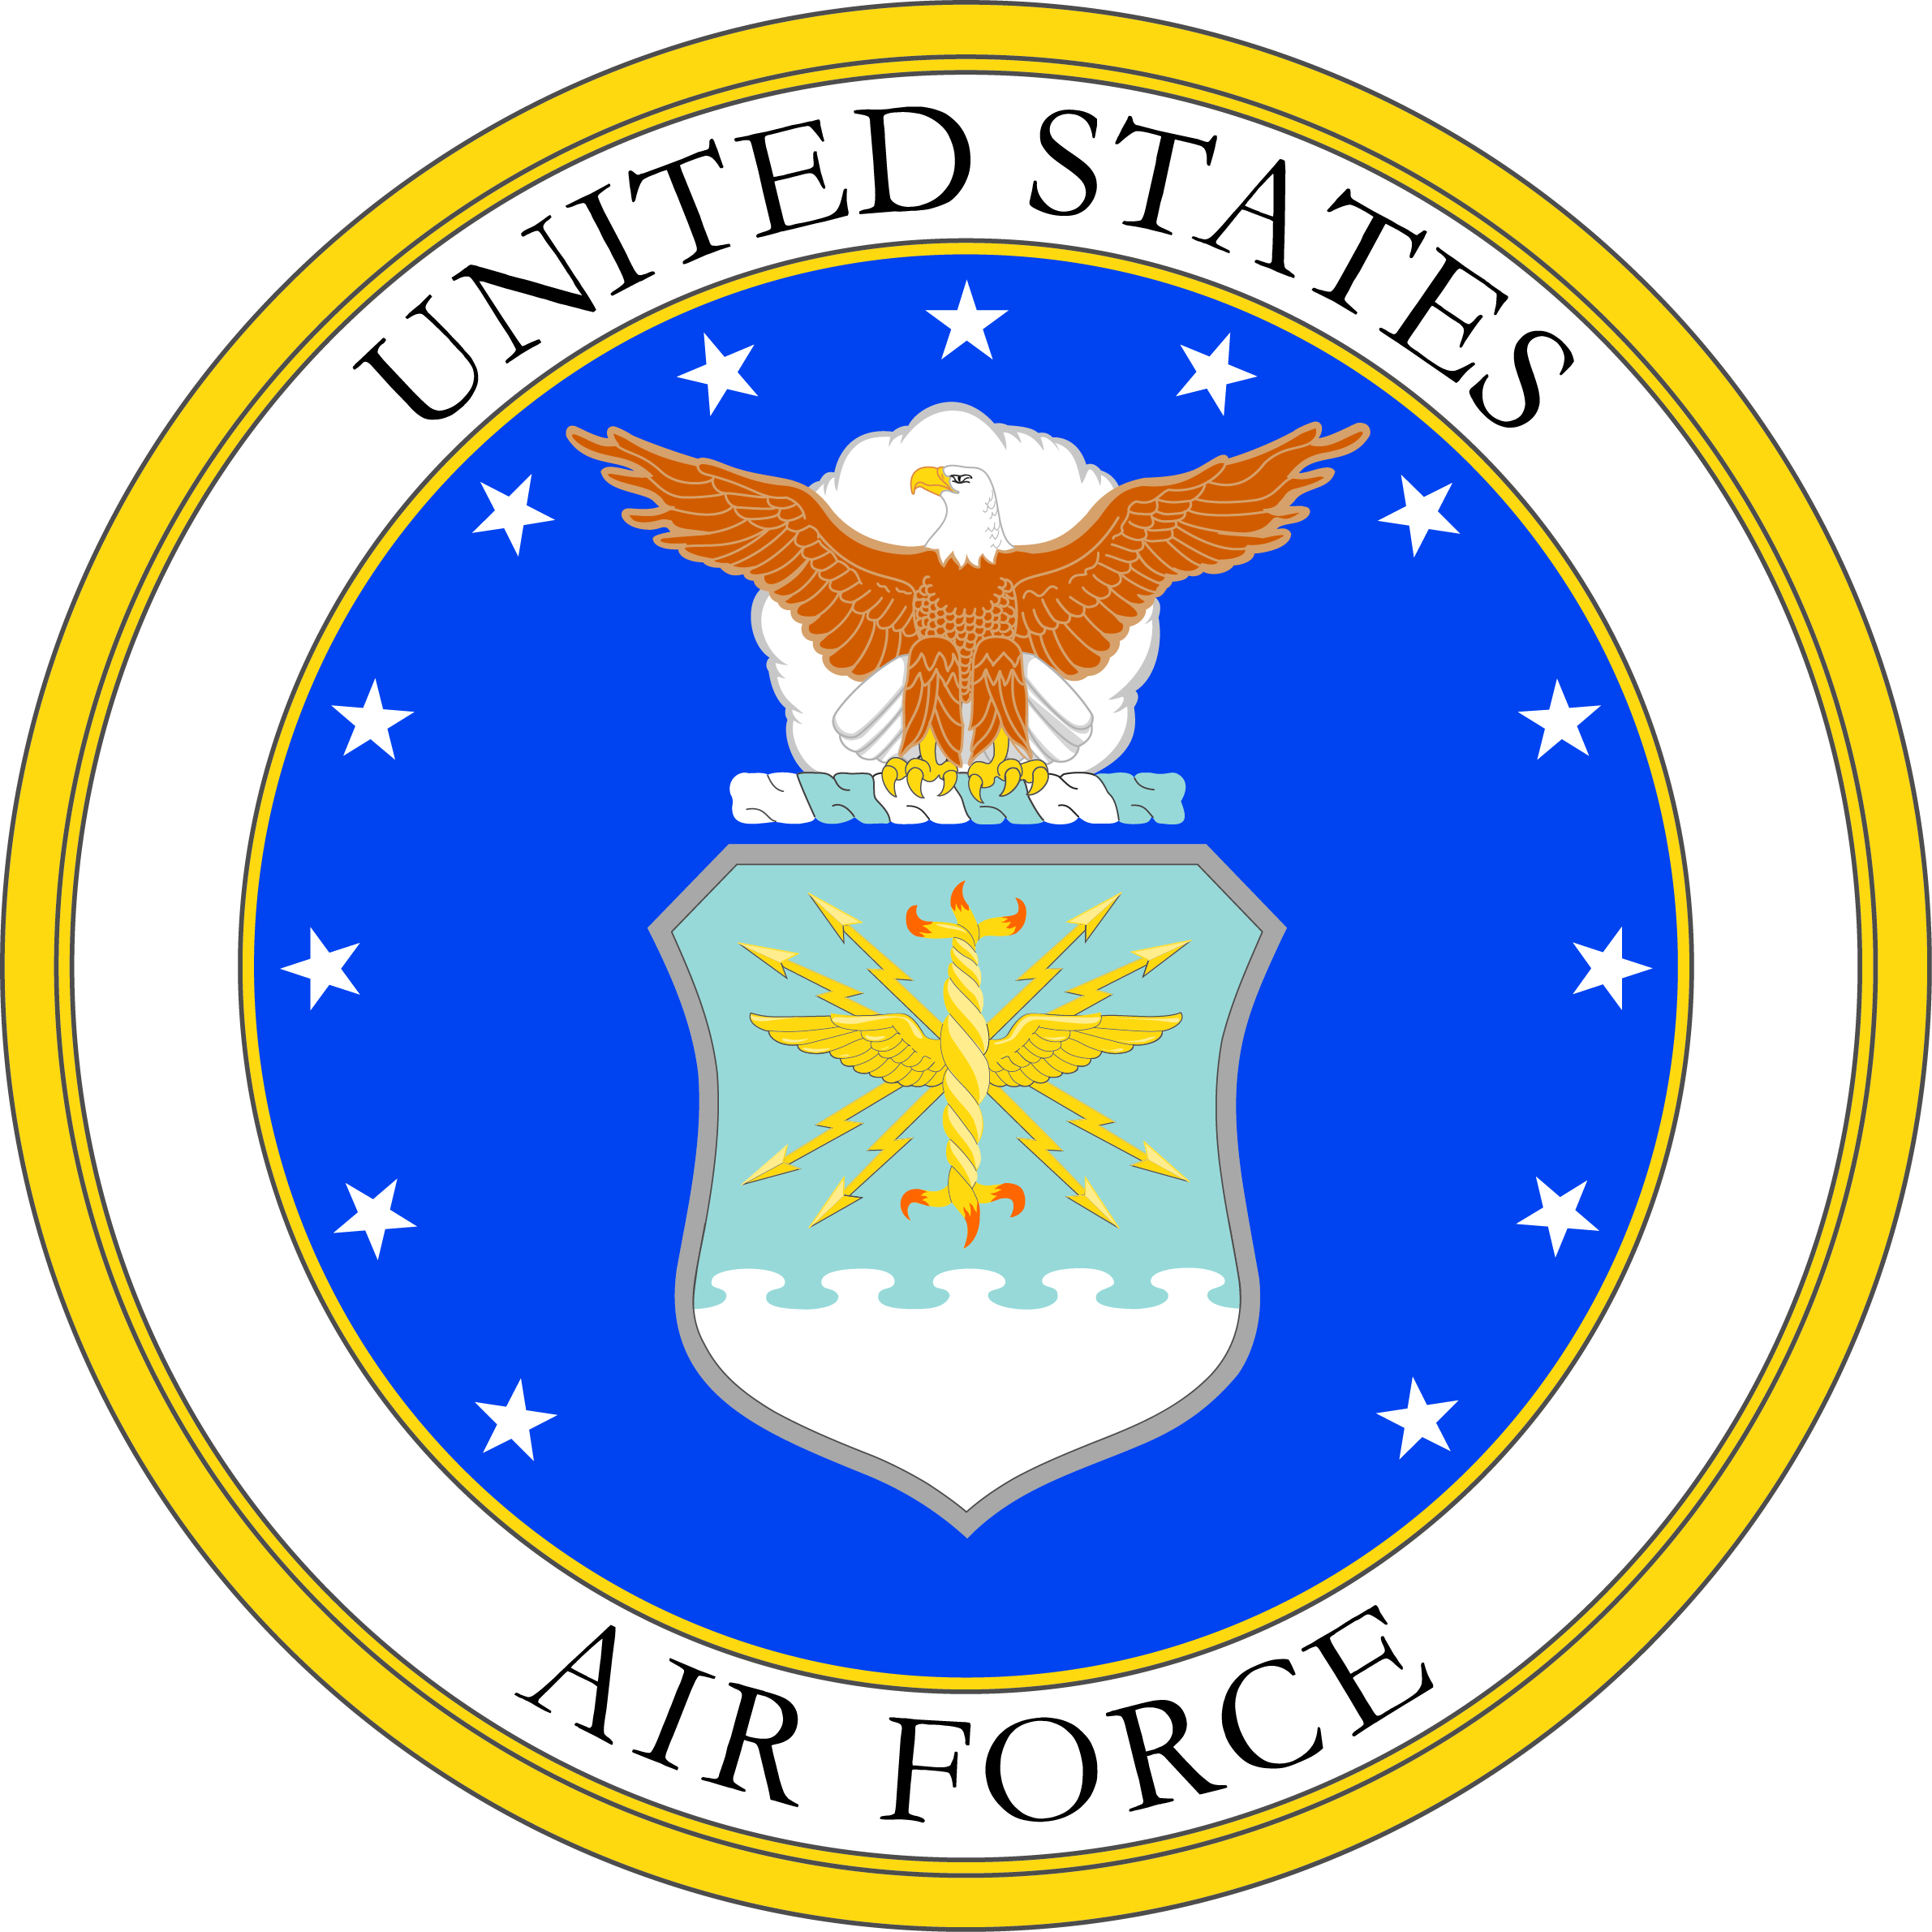 Us Air Force Roundel Meaning Round Designs